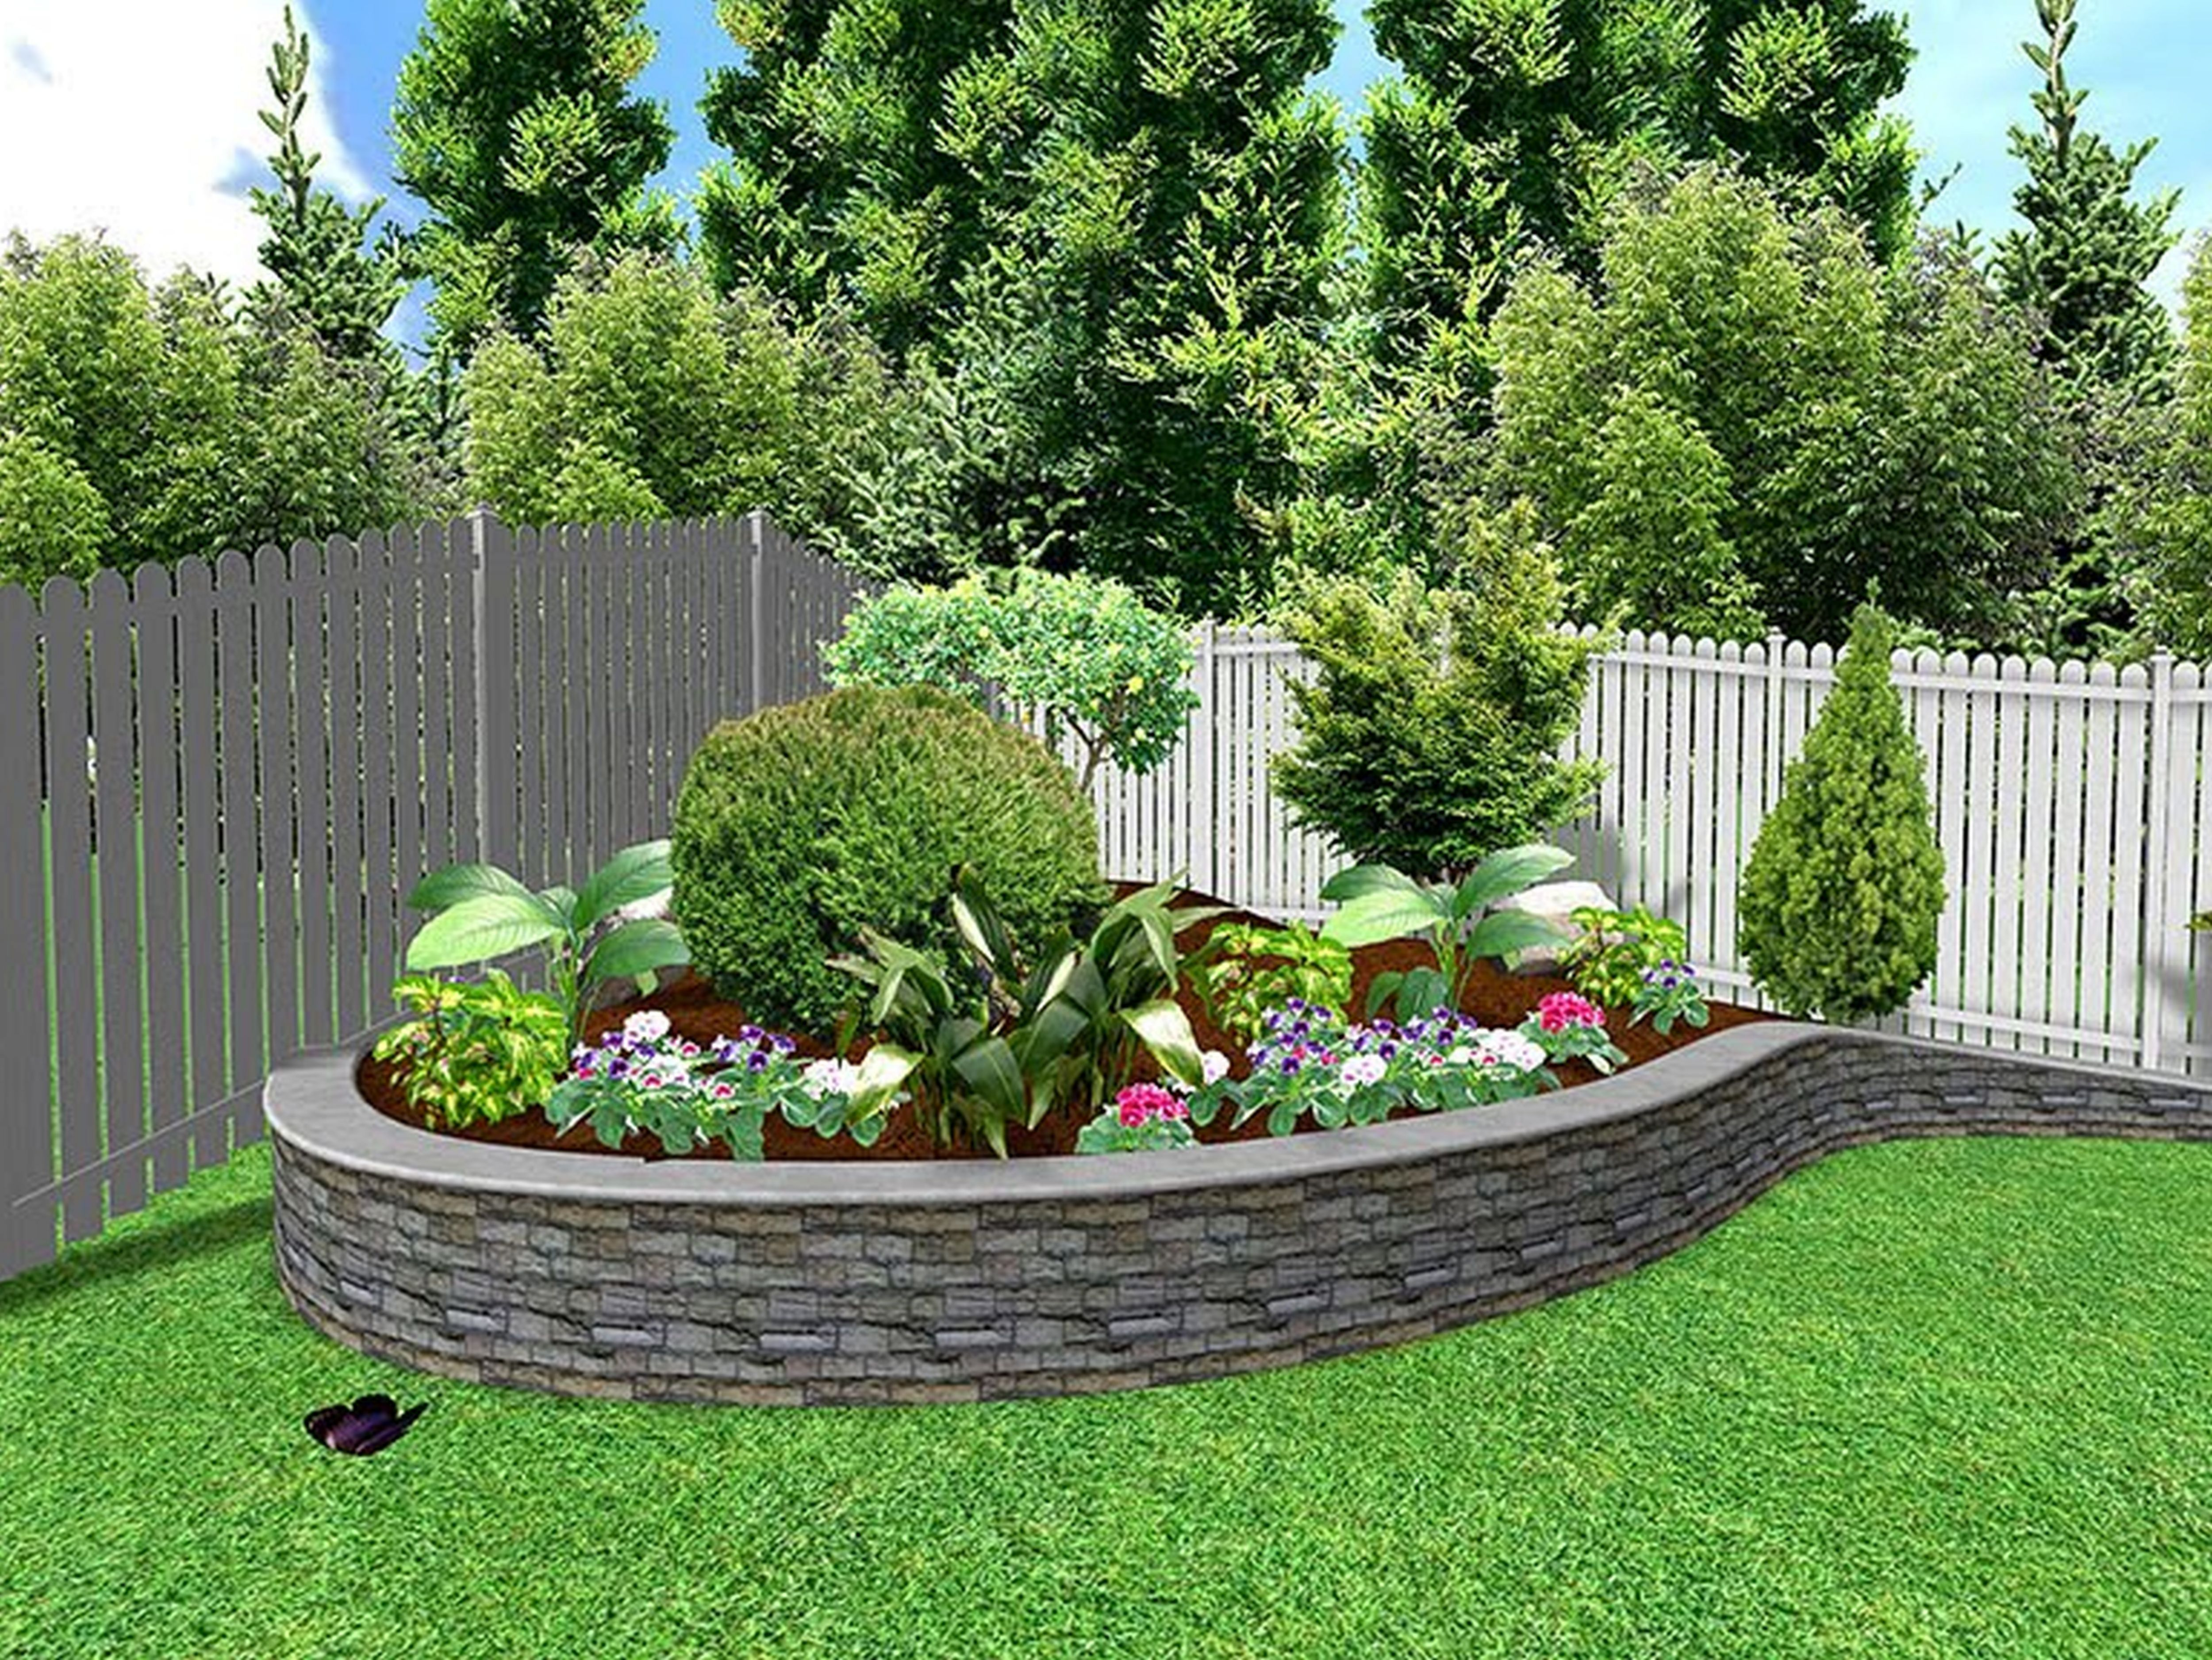 Best And Beautiful 25 Diy Landscaping Design Ideas On A Budget Landscaping Inspiration Easy Garden Easy Landscaping Backyard garden arcadia wi